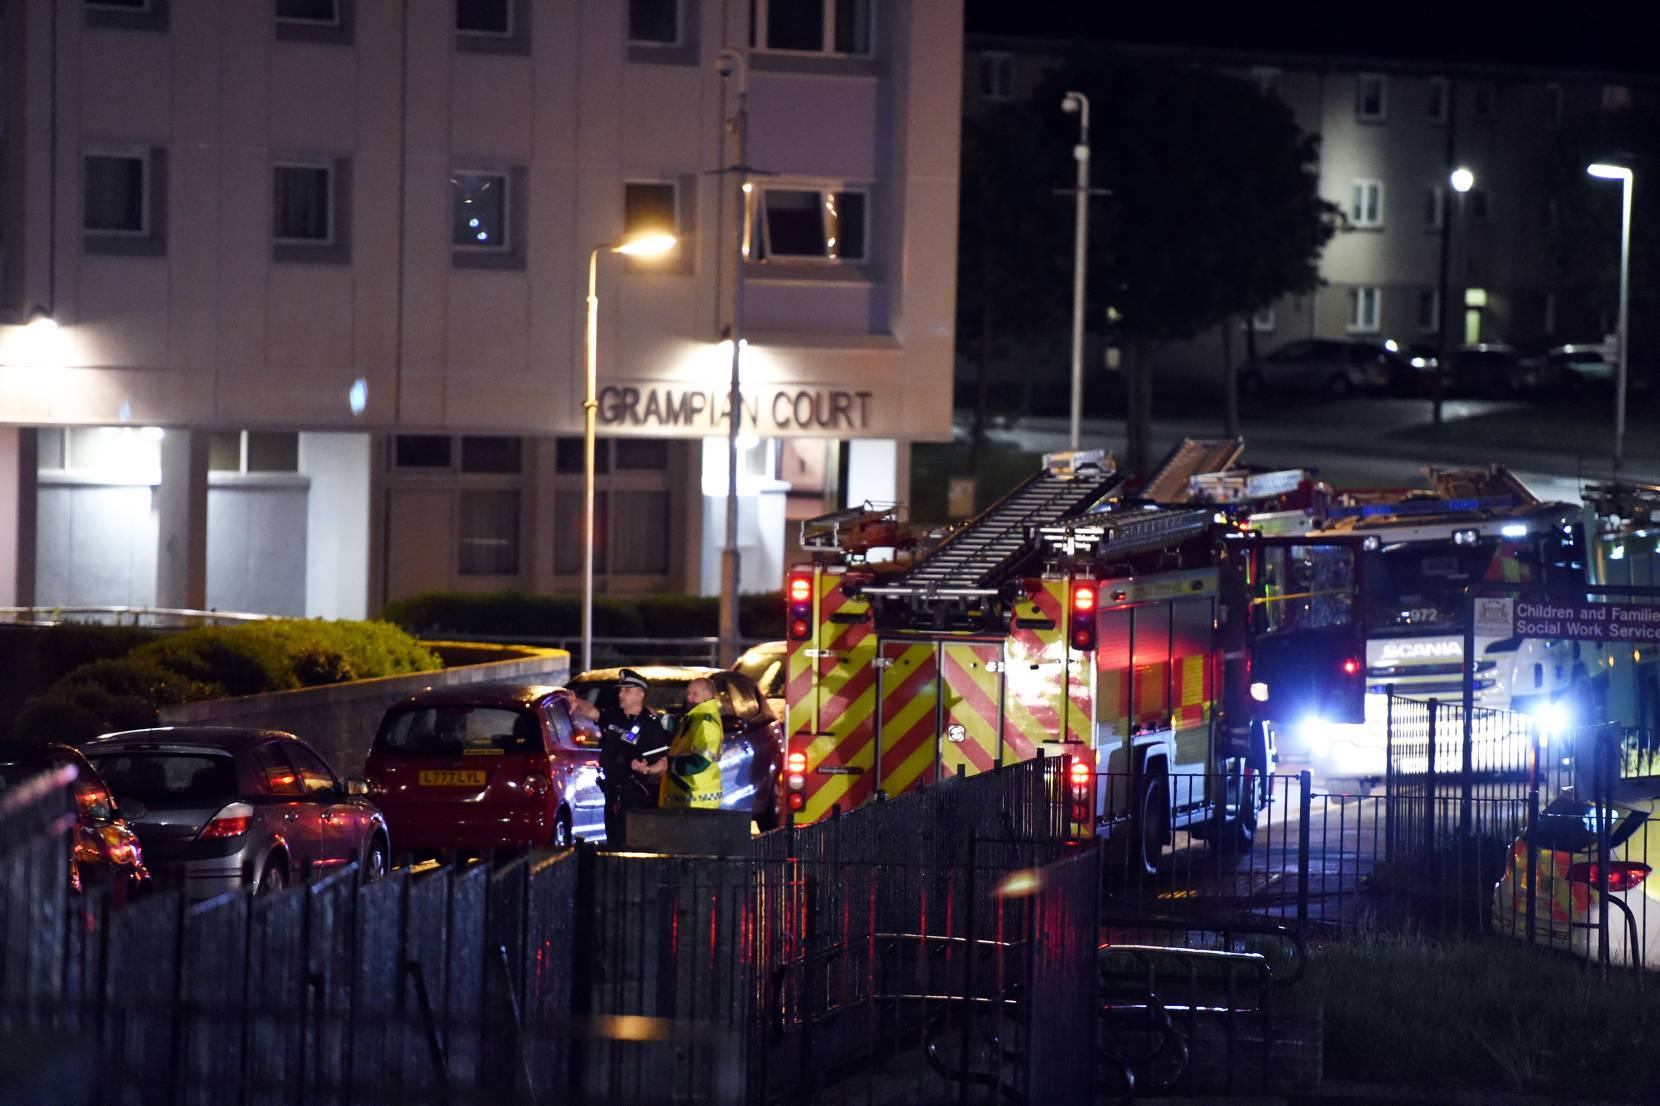 A total of 21 people required treatment from paramedics after a fire at Balnagask Circle in Aberdeen. Emergency services are pictured at the scene.